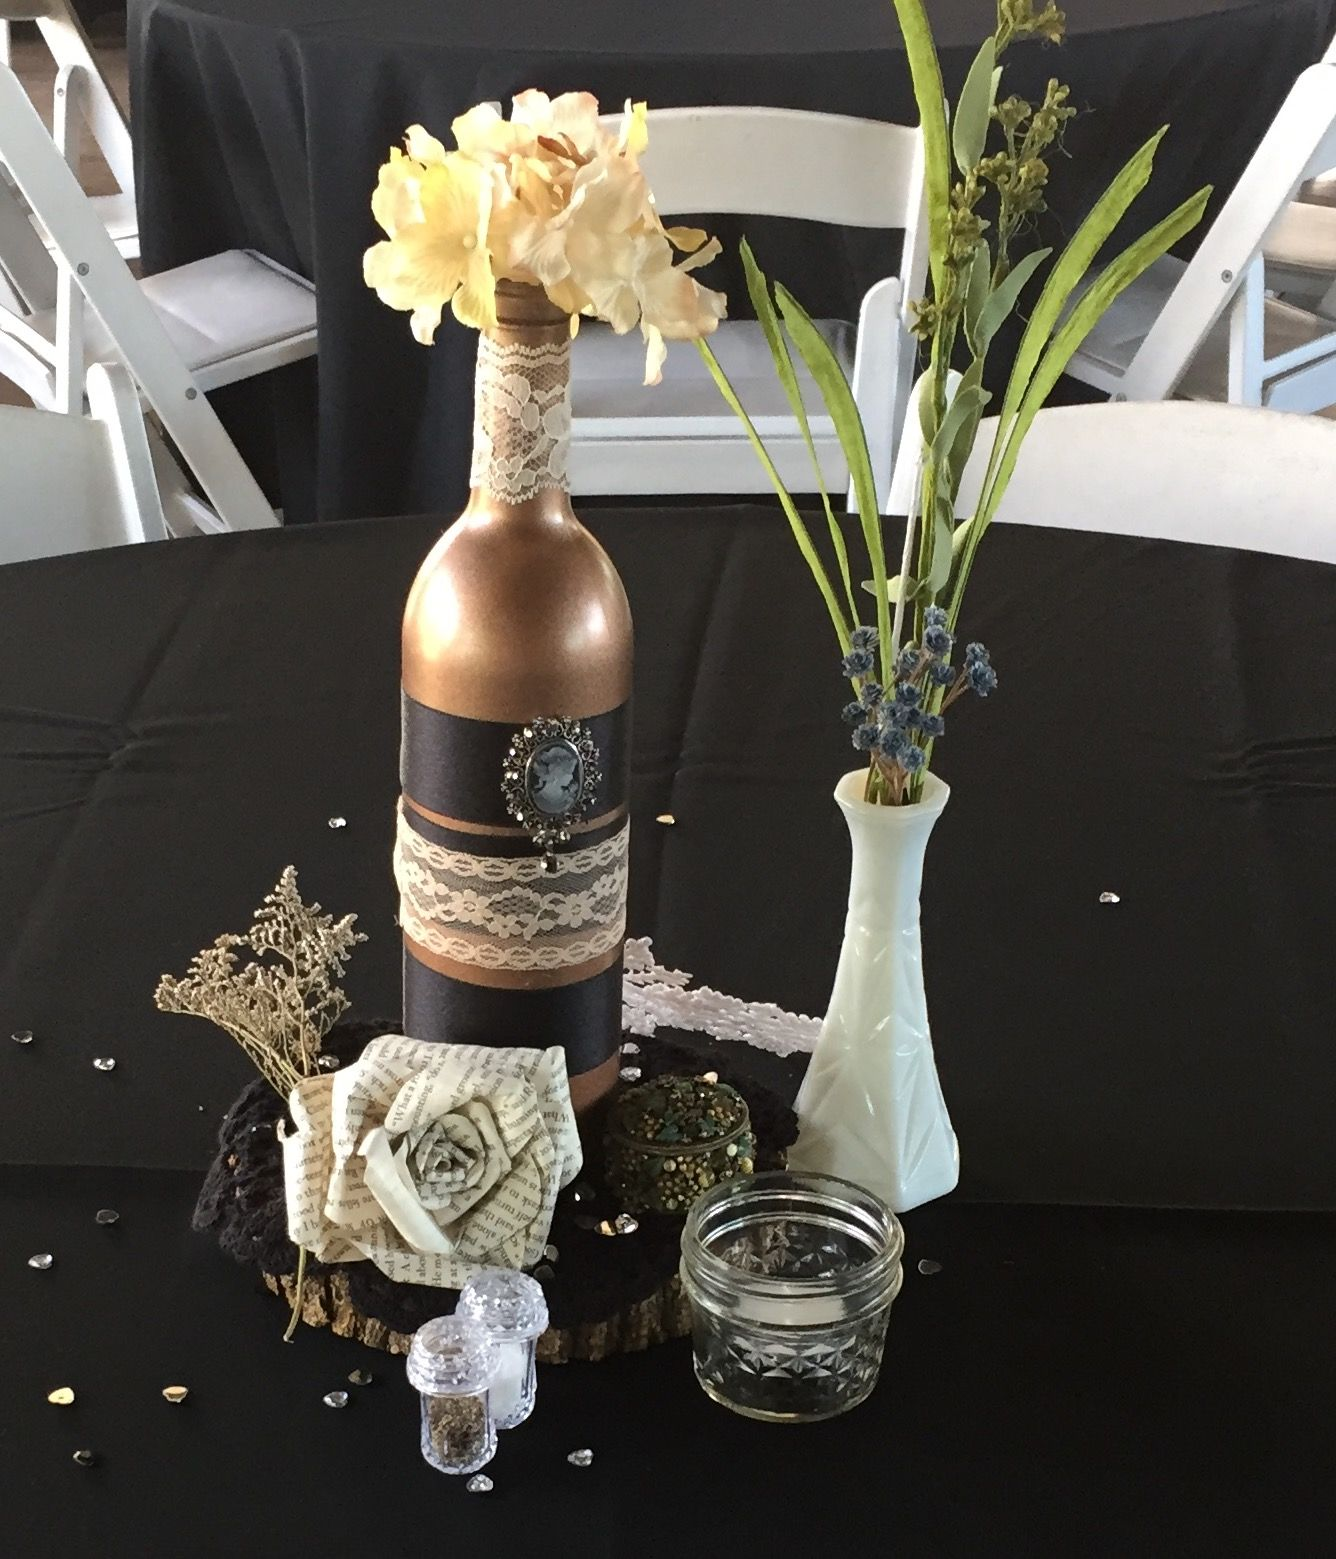 Vintage eclectic centerpiece #5, made with A copper colored decorated wine  bottle, a